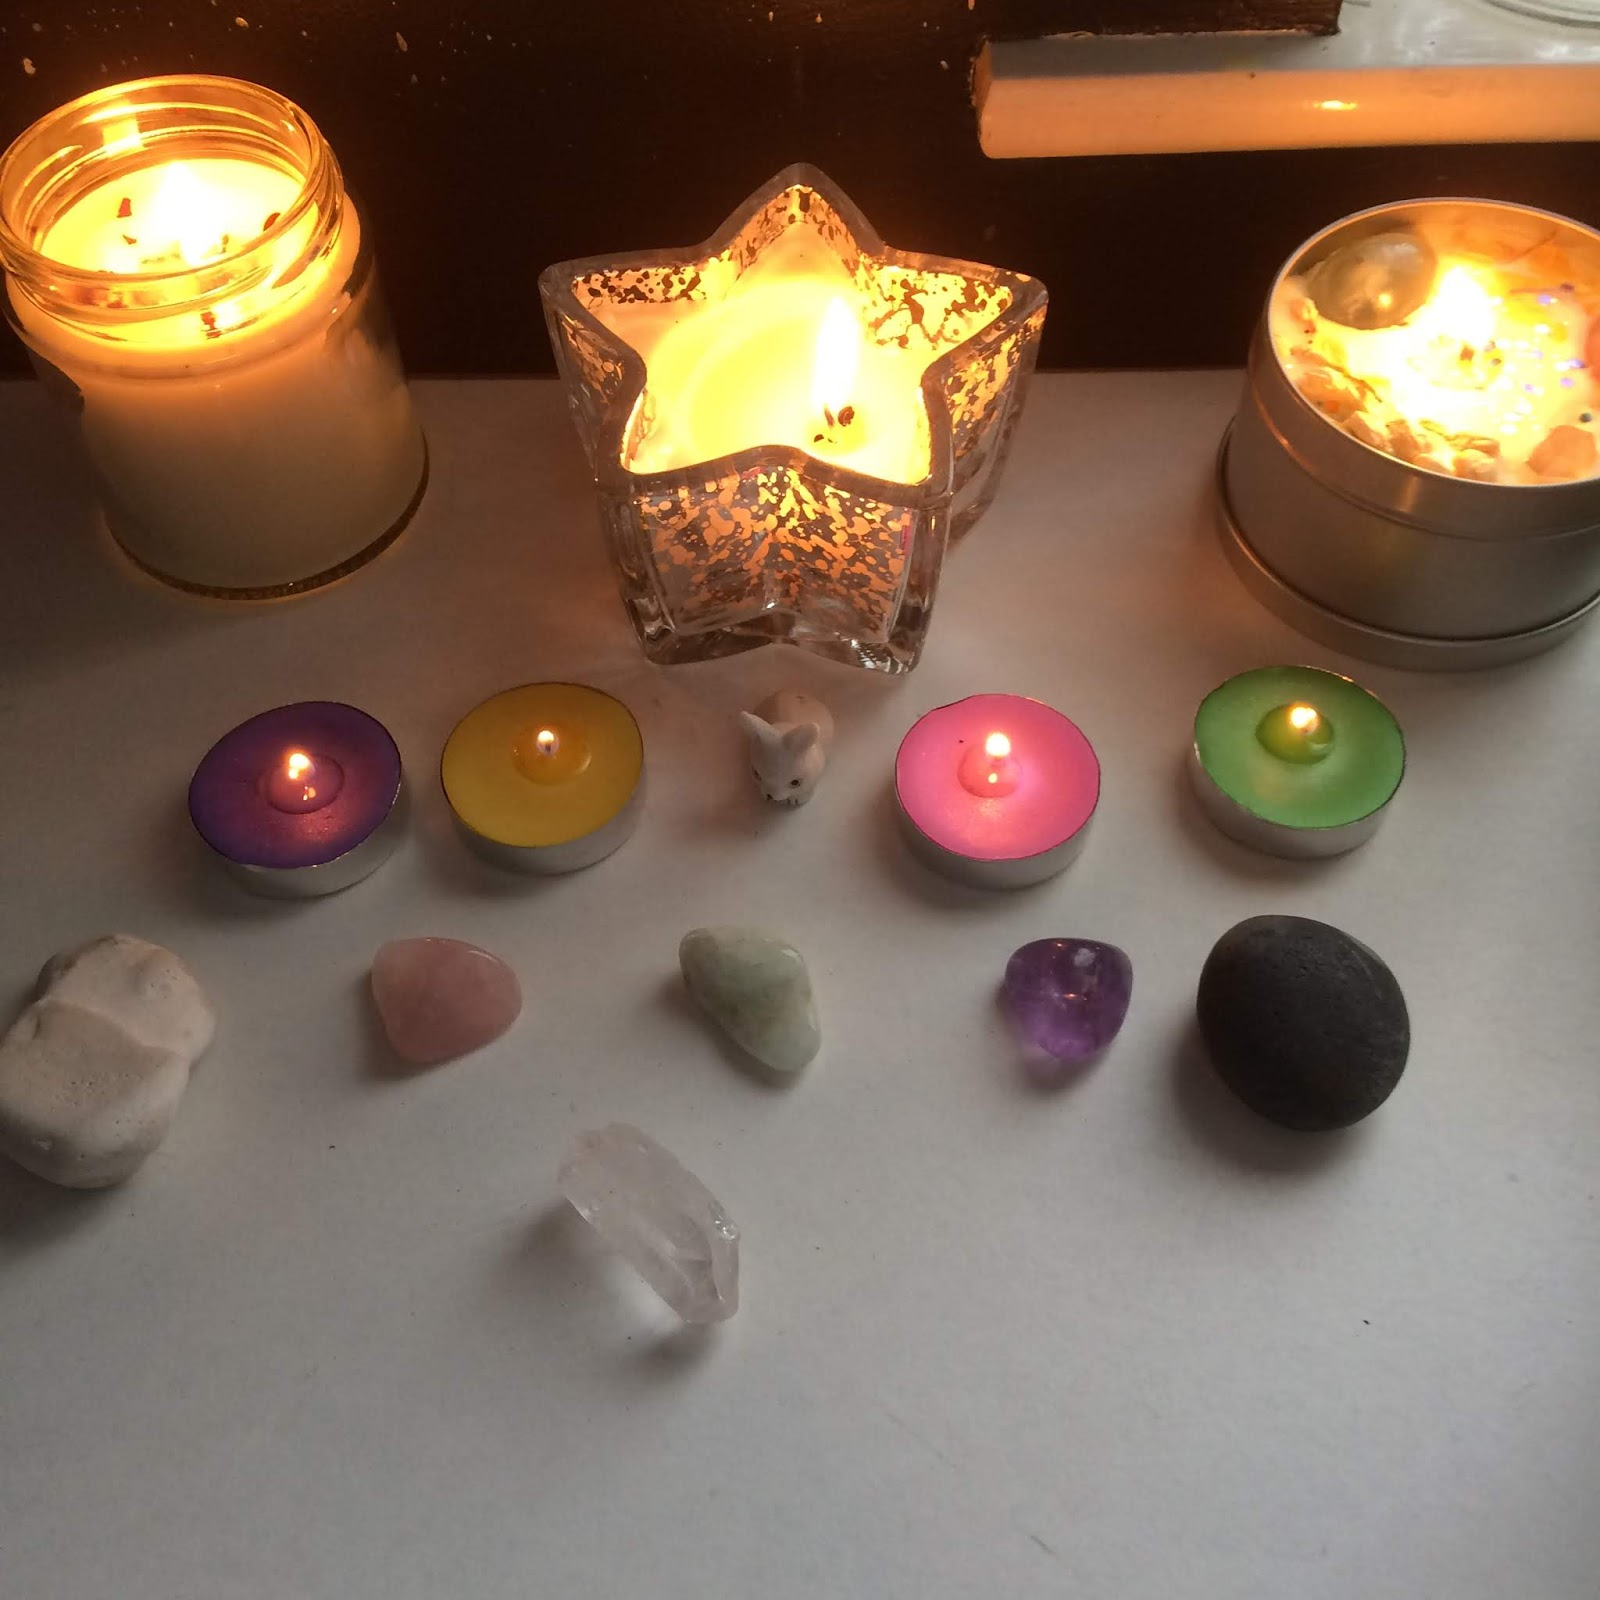 A close up of my Ostara altar, featuring the Ostara candle, a star shaped container candle, and my Feast of Lovers container candle lined up at the back. There are purple, yellow, pink and green tea lights lit in front of the container candles in a row, with a tiny bunny ornament in the centre. Next is a white stone, a rose quartz tumblestone, an aquamarine tumblestone, an amethyst tumblestone, and a black stone. In front, in the centre, is a clear quartz point